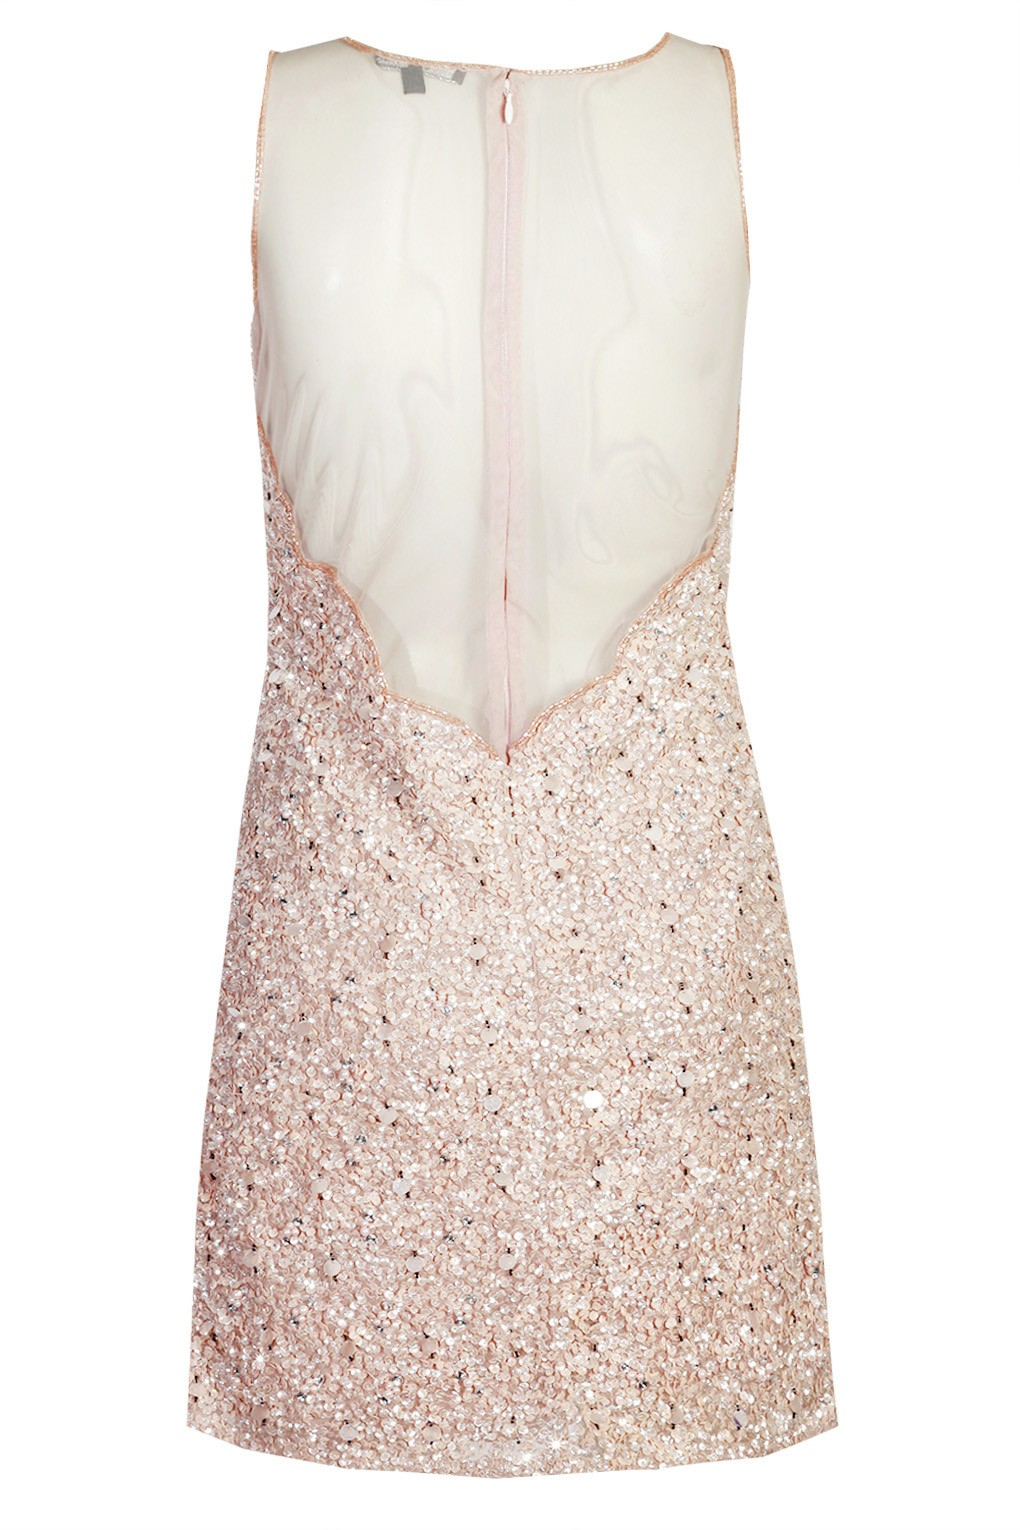 cca2e5dceb80e LACE   BEADS PICASSO PINK EMBELLISHED DRESS